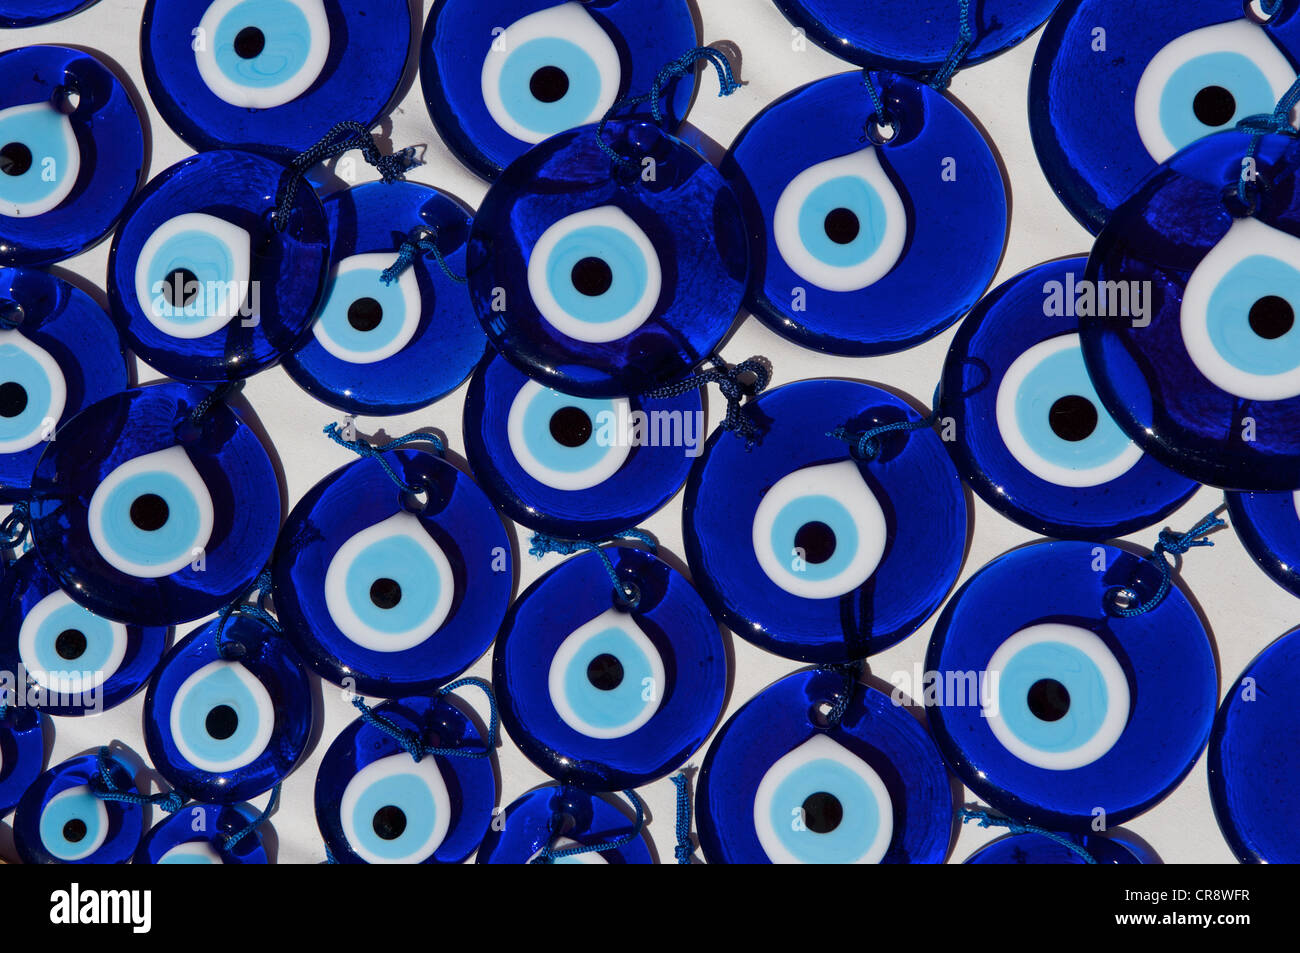 Nazar pendants, souvenirs in Dalyan near Marmaris, Turkish Aegean Coast, Turkey - Stock Image